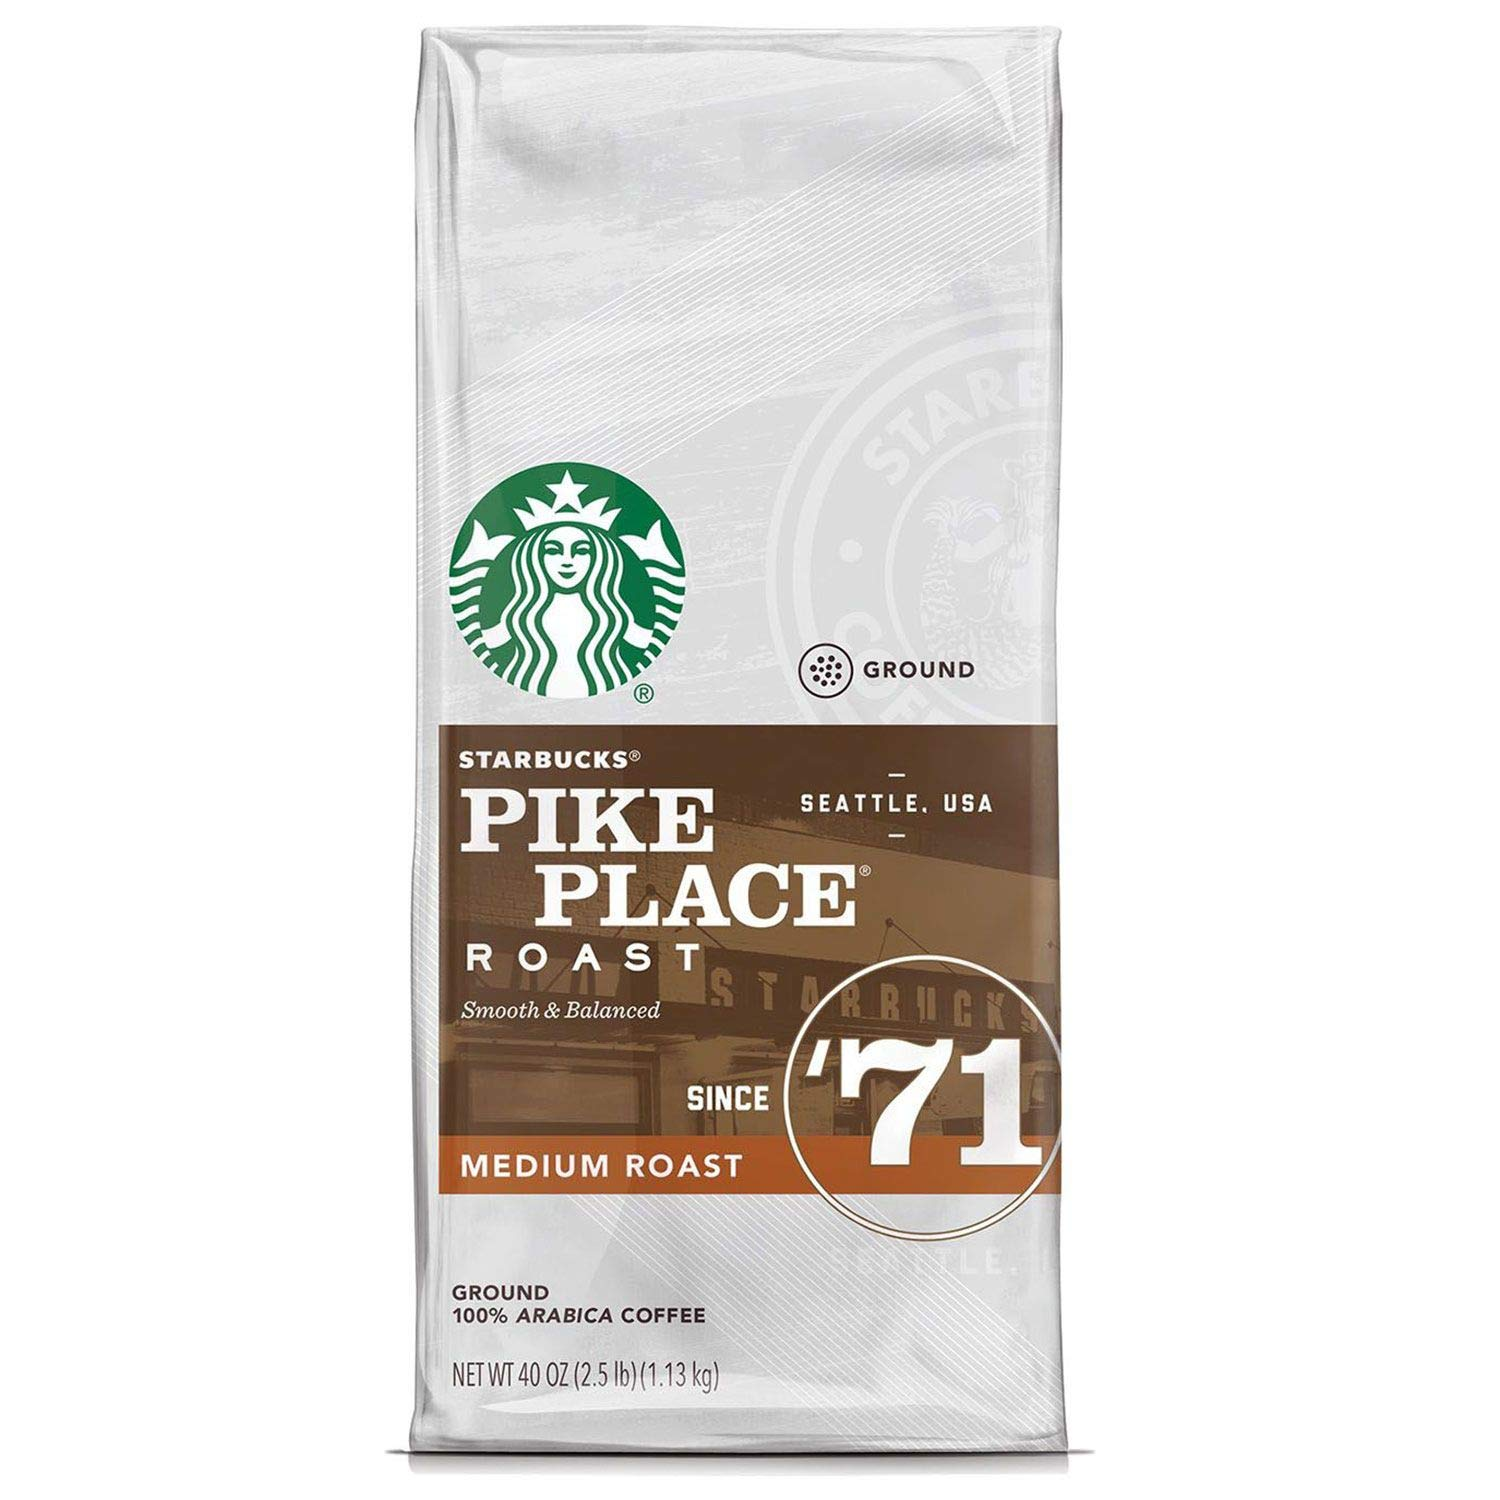 Pike Place Starbucks Medium Roast Ground Coffee Review